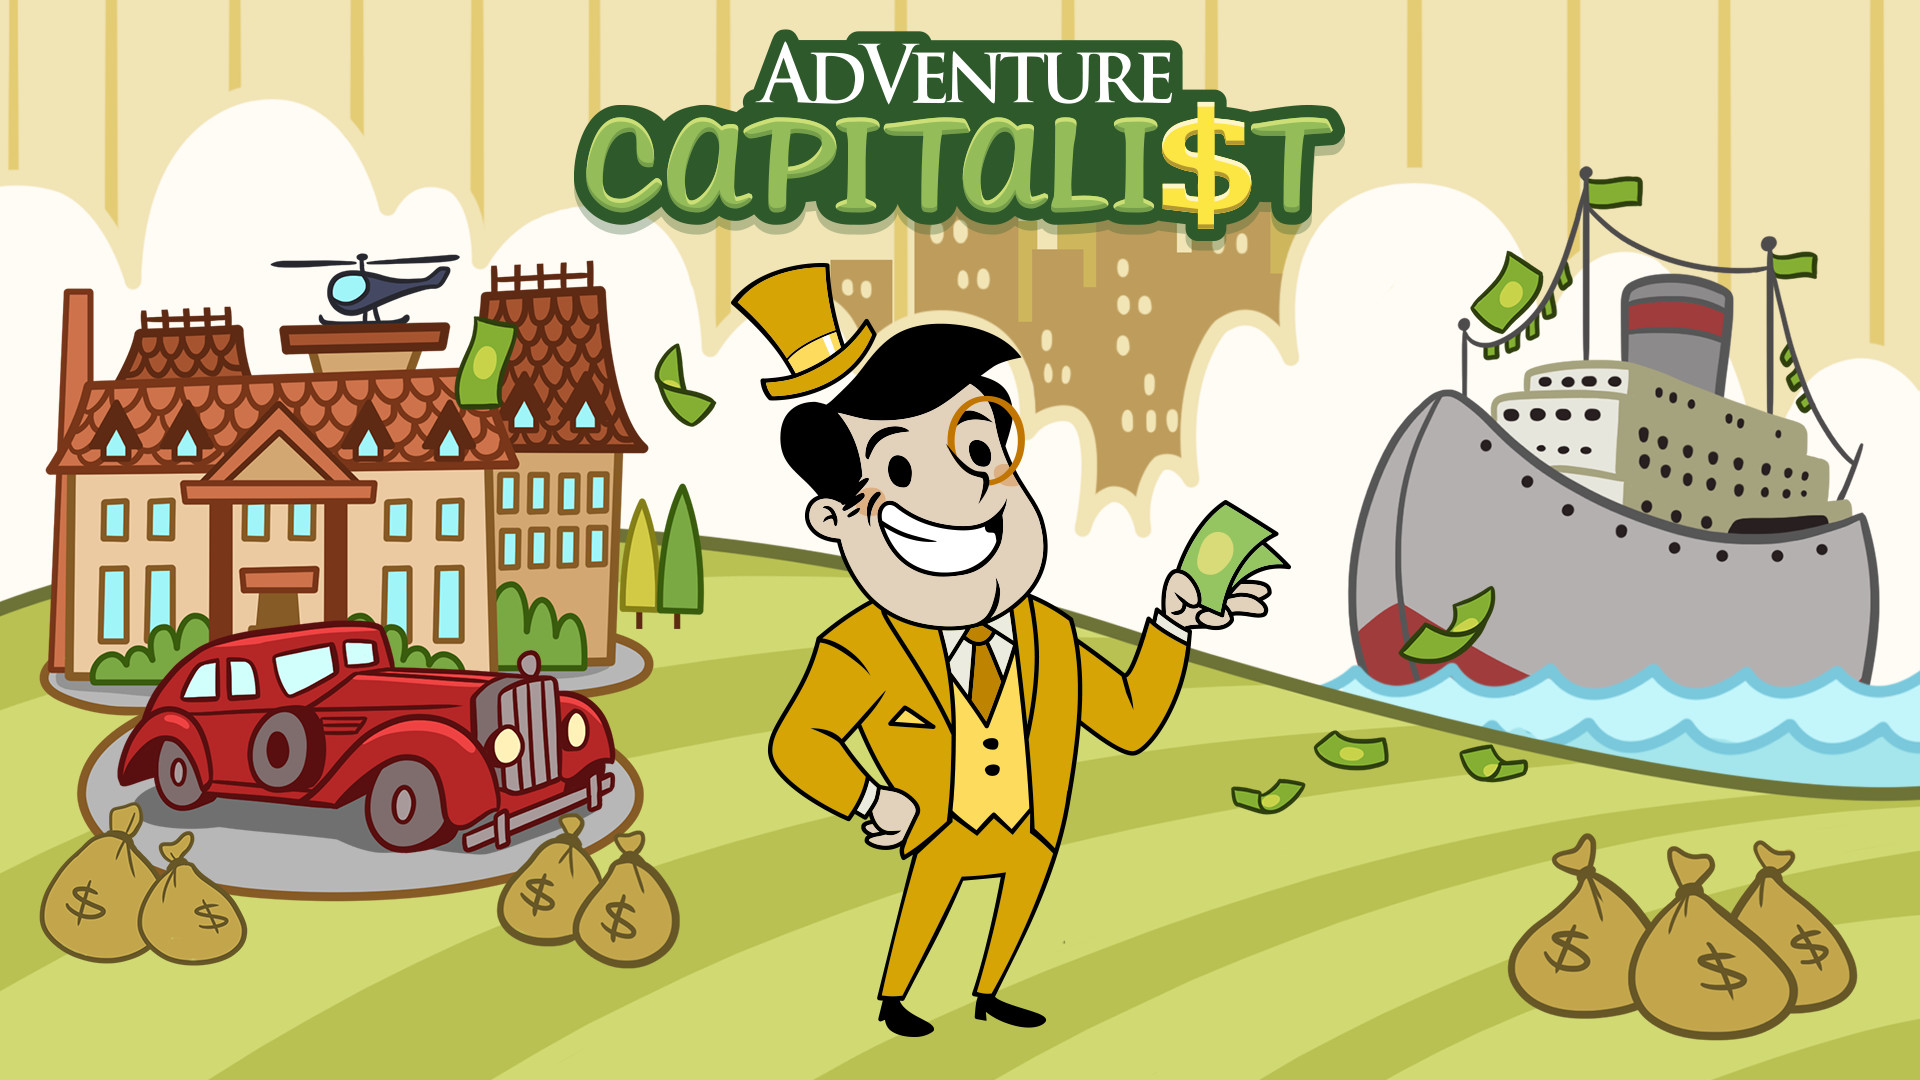 AdVenture Capitalist! Guide